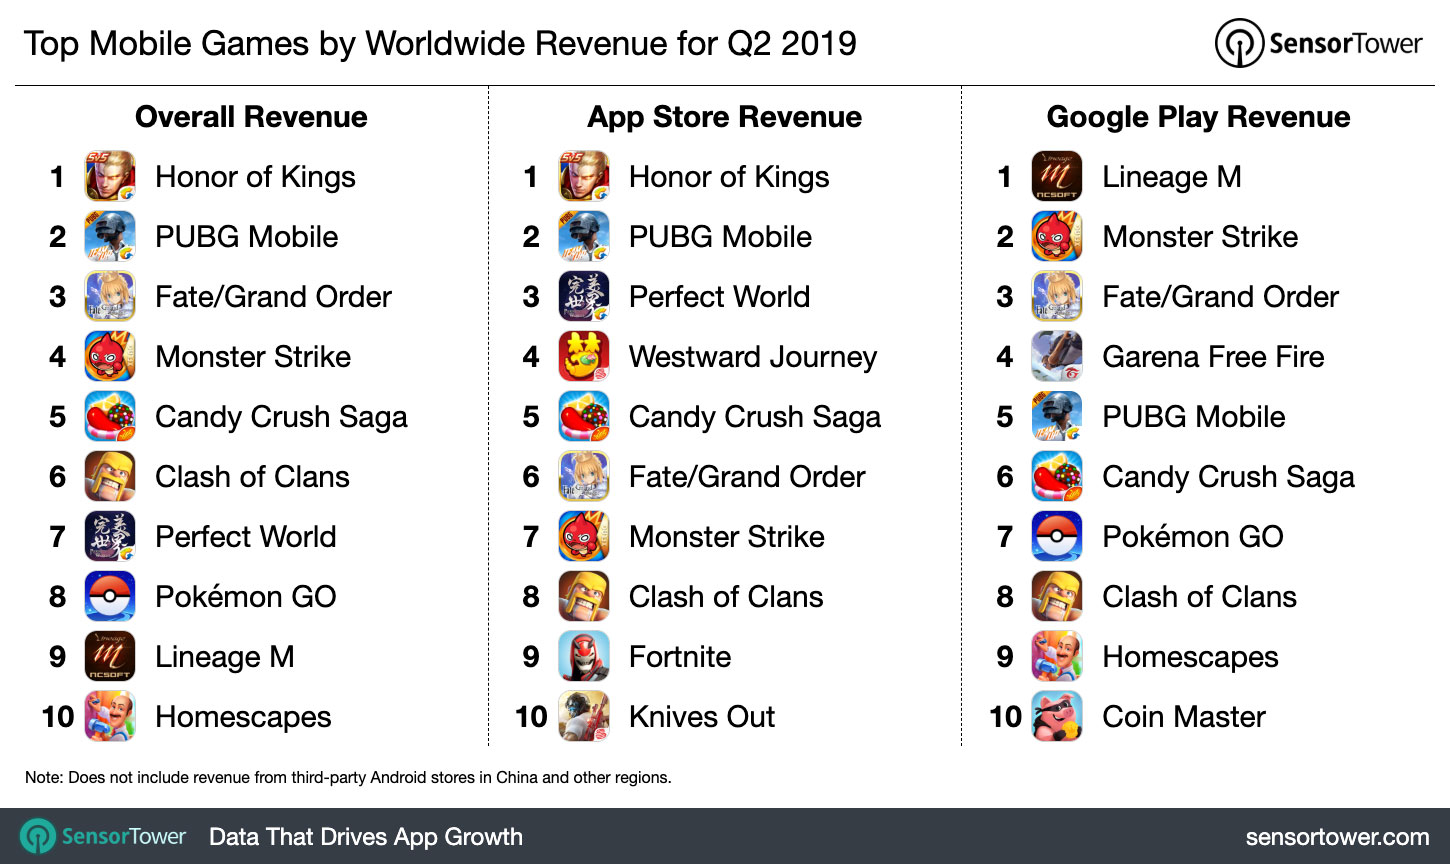 The Top Mobile Apps, Games, and Publishers of Q2 2019